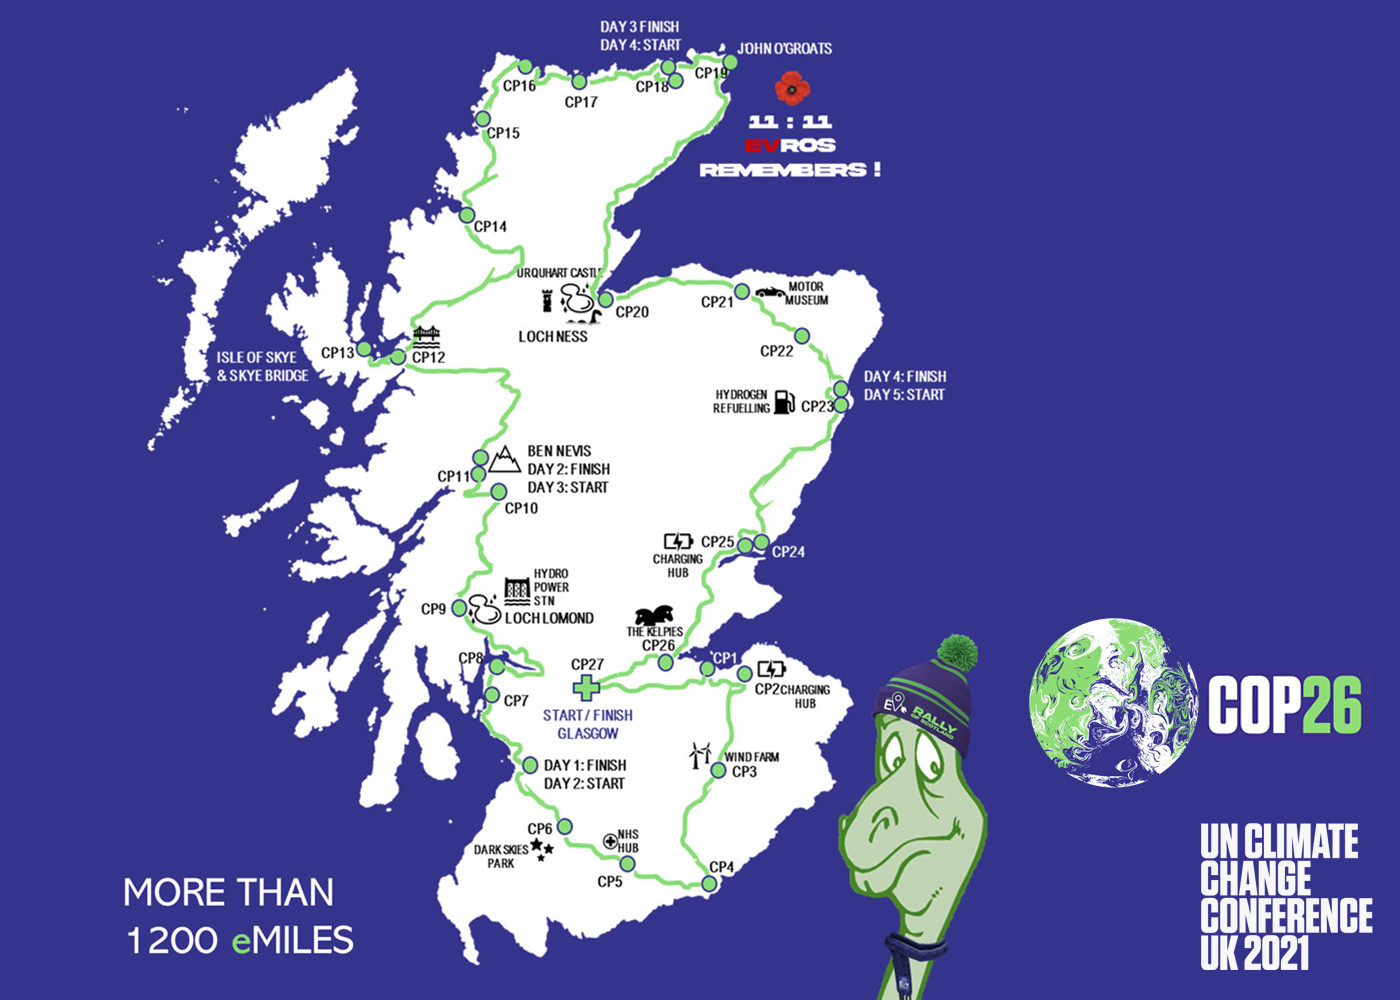 EV Rally of Scotland to take place during COP26